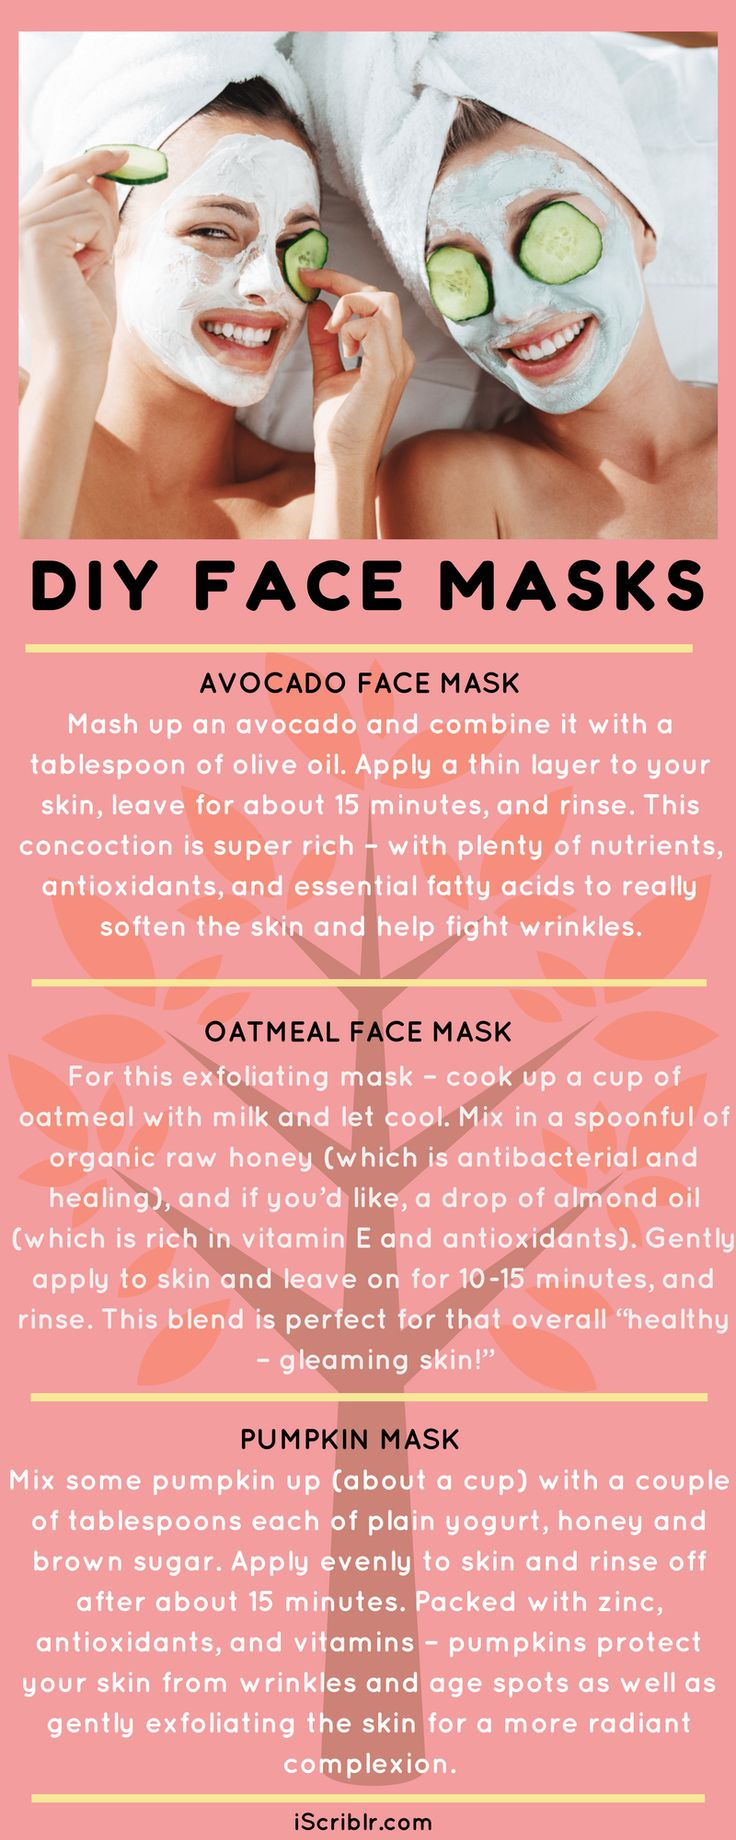 """With Valentine's day just around the corner, it's time for some DIY """"homemade"""" indulgence!💆♀️ http://iscriblr.com/diy-face-masks/ #iScriblr #diy #facemaskAtHome #beautyRegime #selfLove #infographic"""